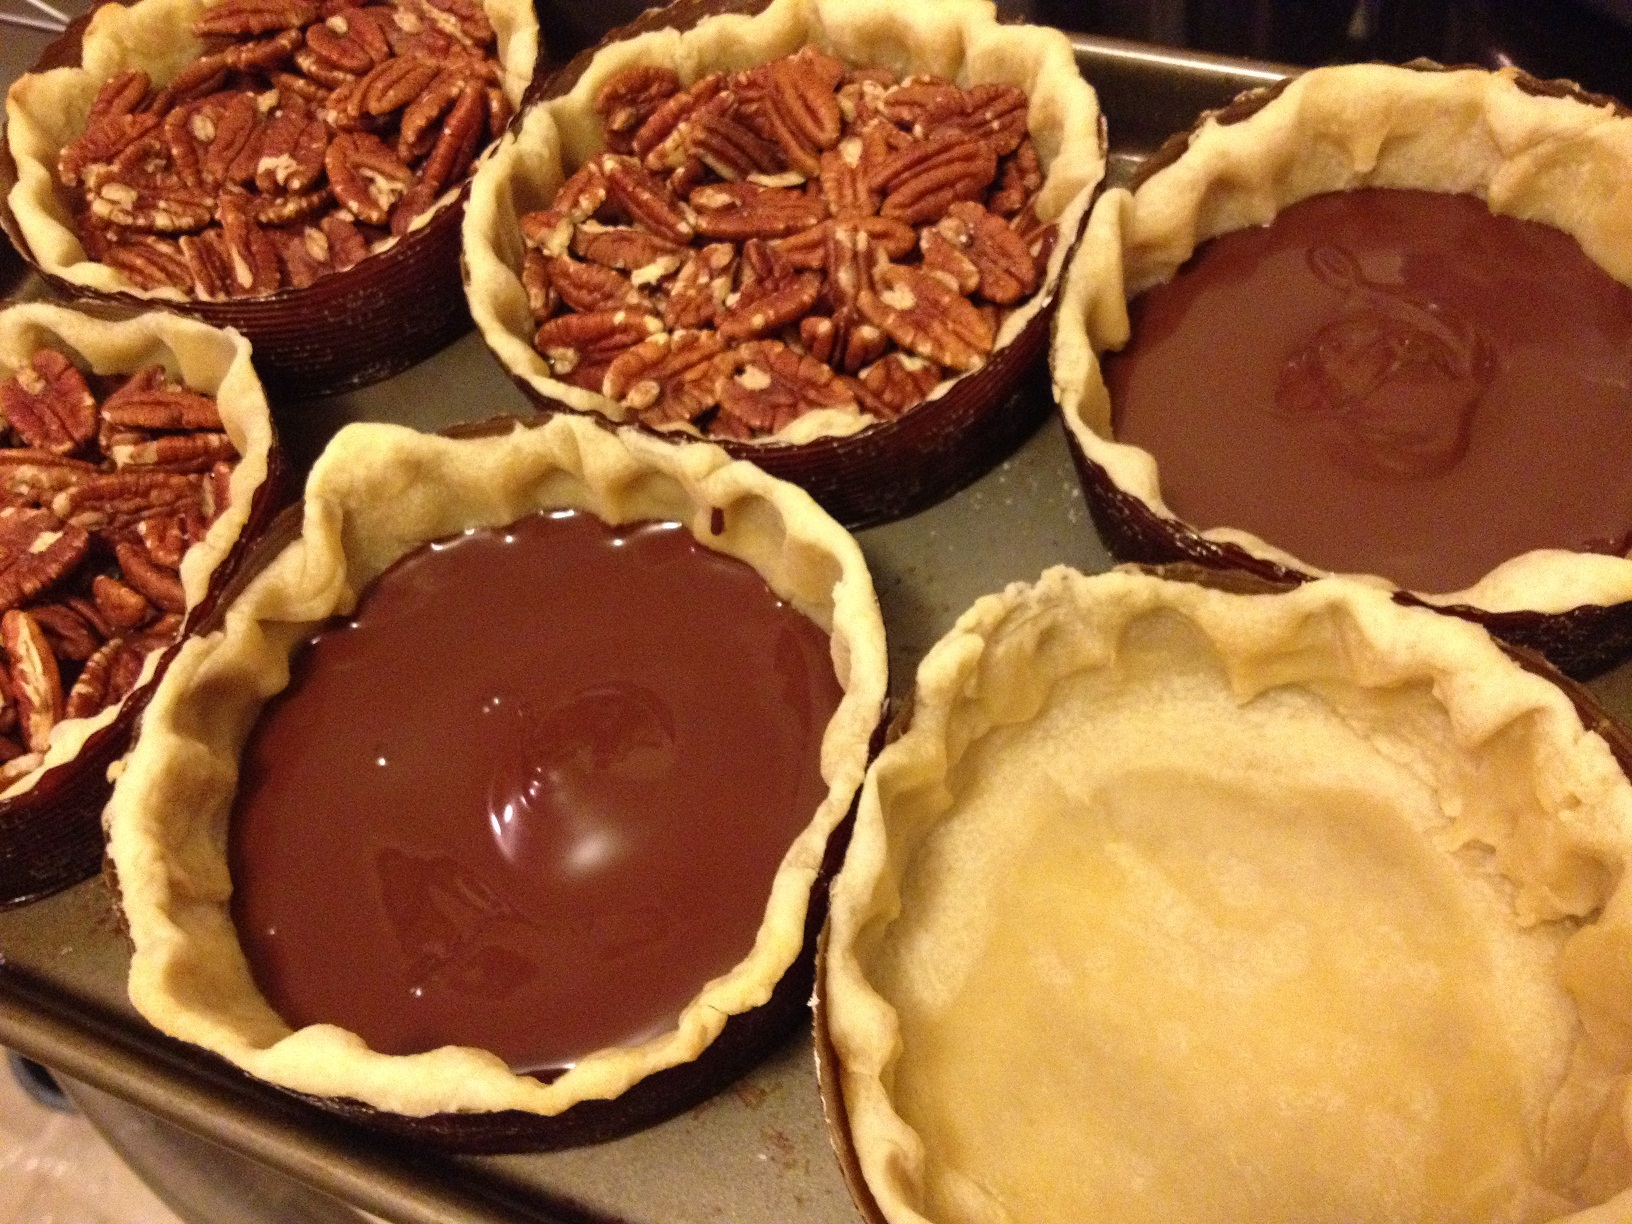 Pare baked pie shells, melted chocolate layer, and toasted pecans